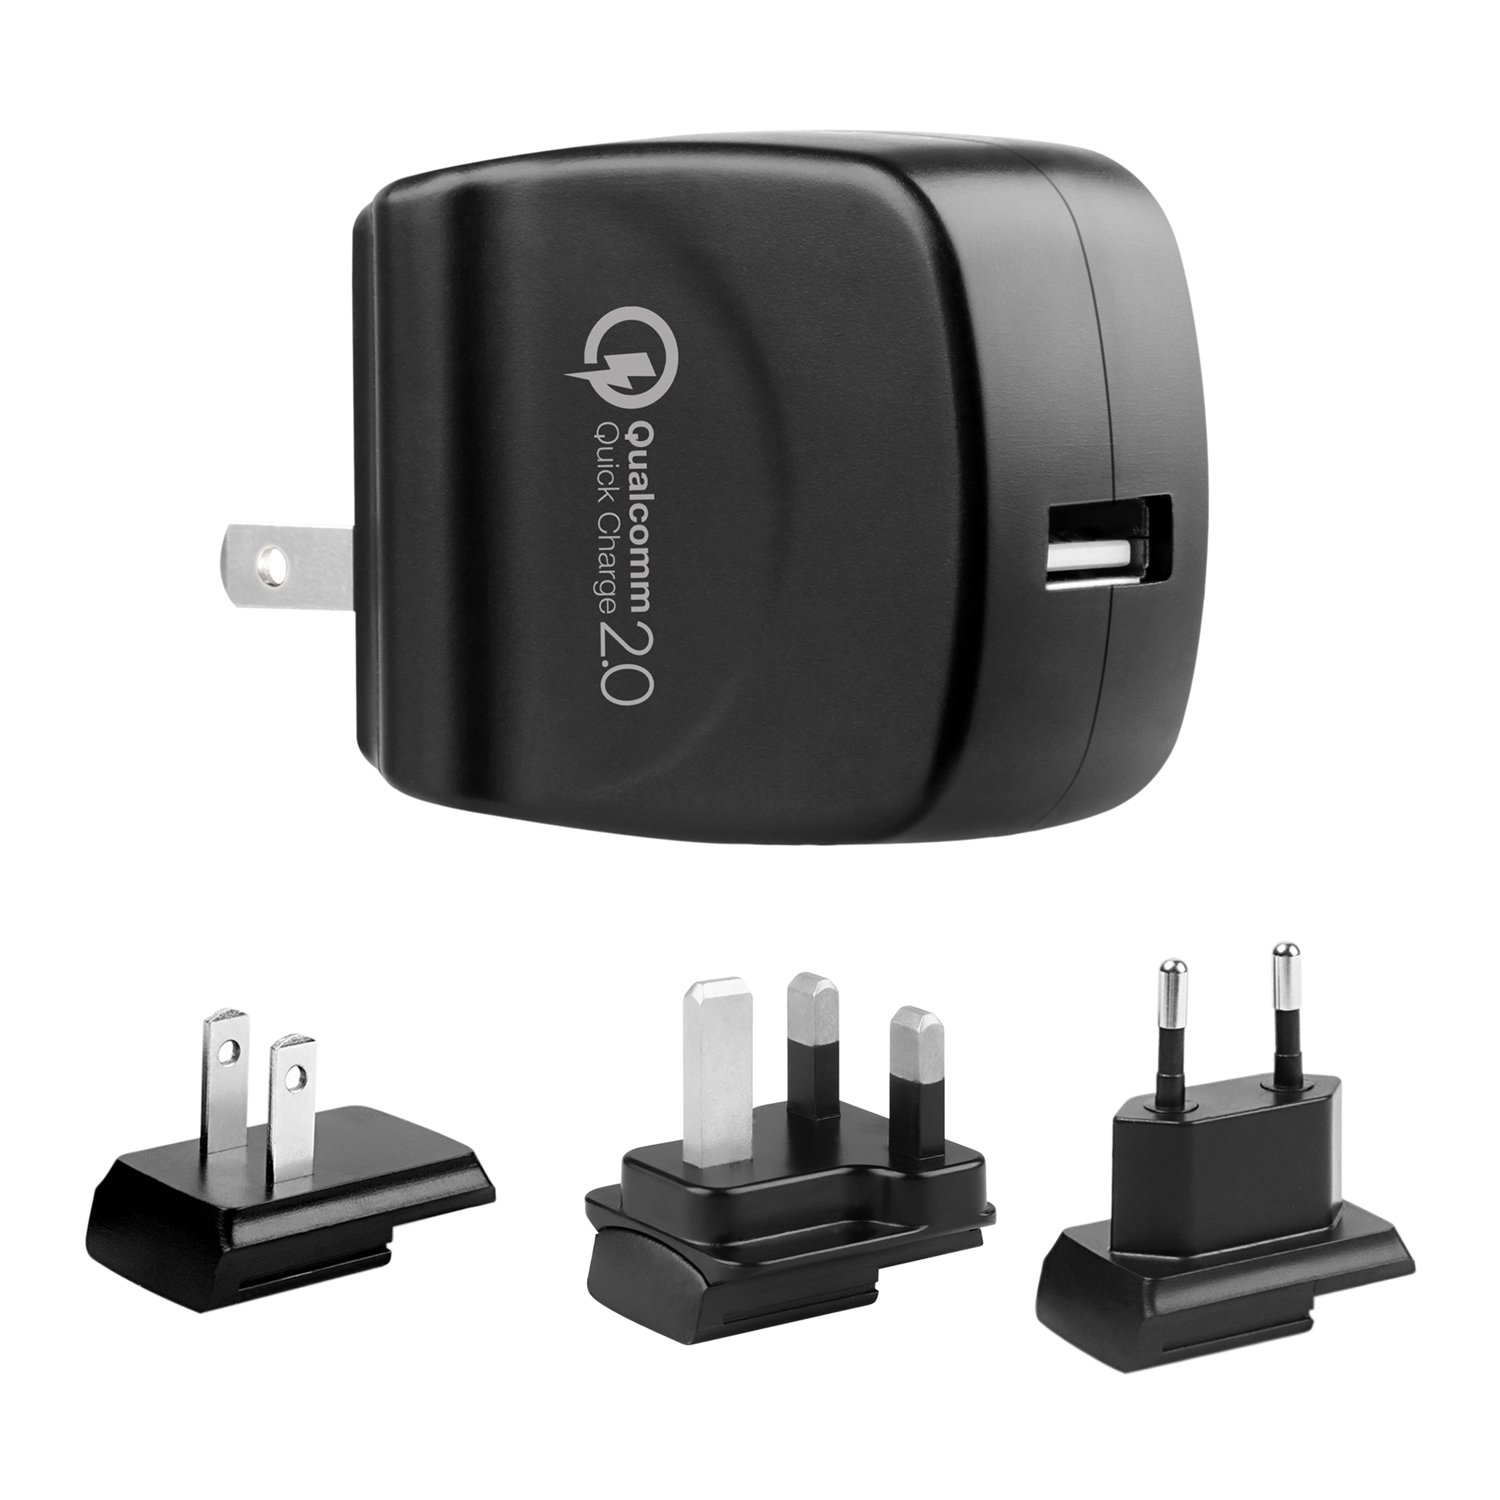 delicate Quick Charger 2.0 USB Wall Charger Fit for Samsung Galaxy S7,S5, Note 4, S6, Edge, blackberry